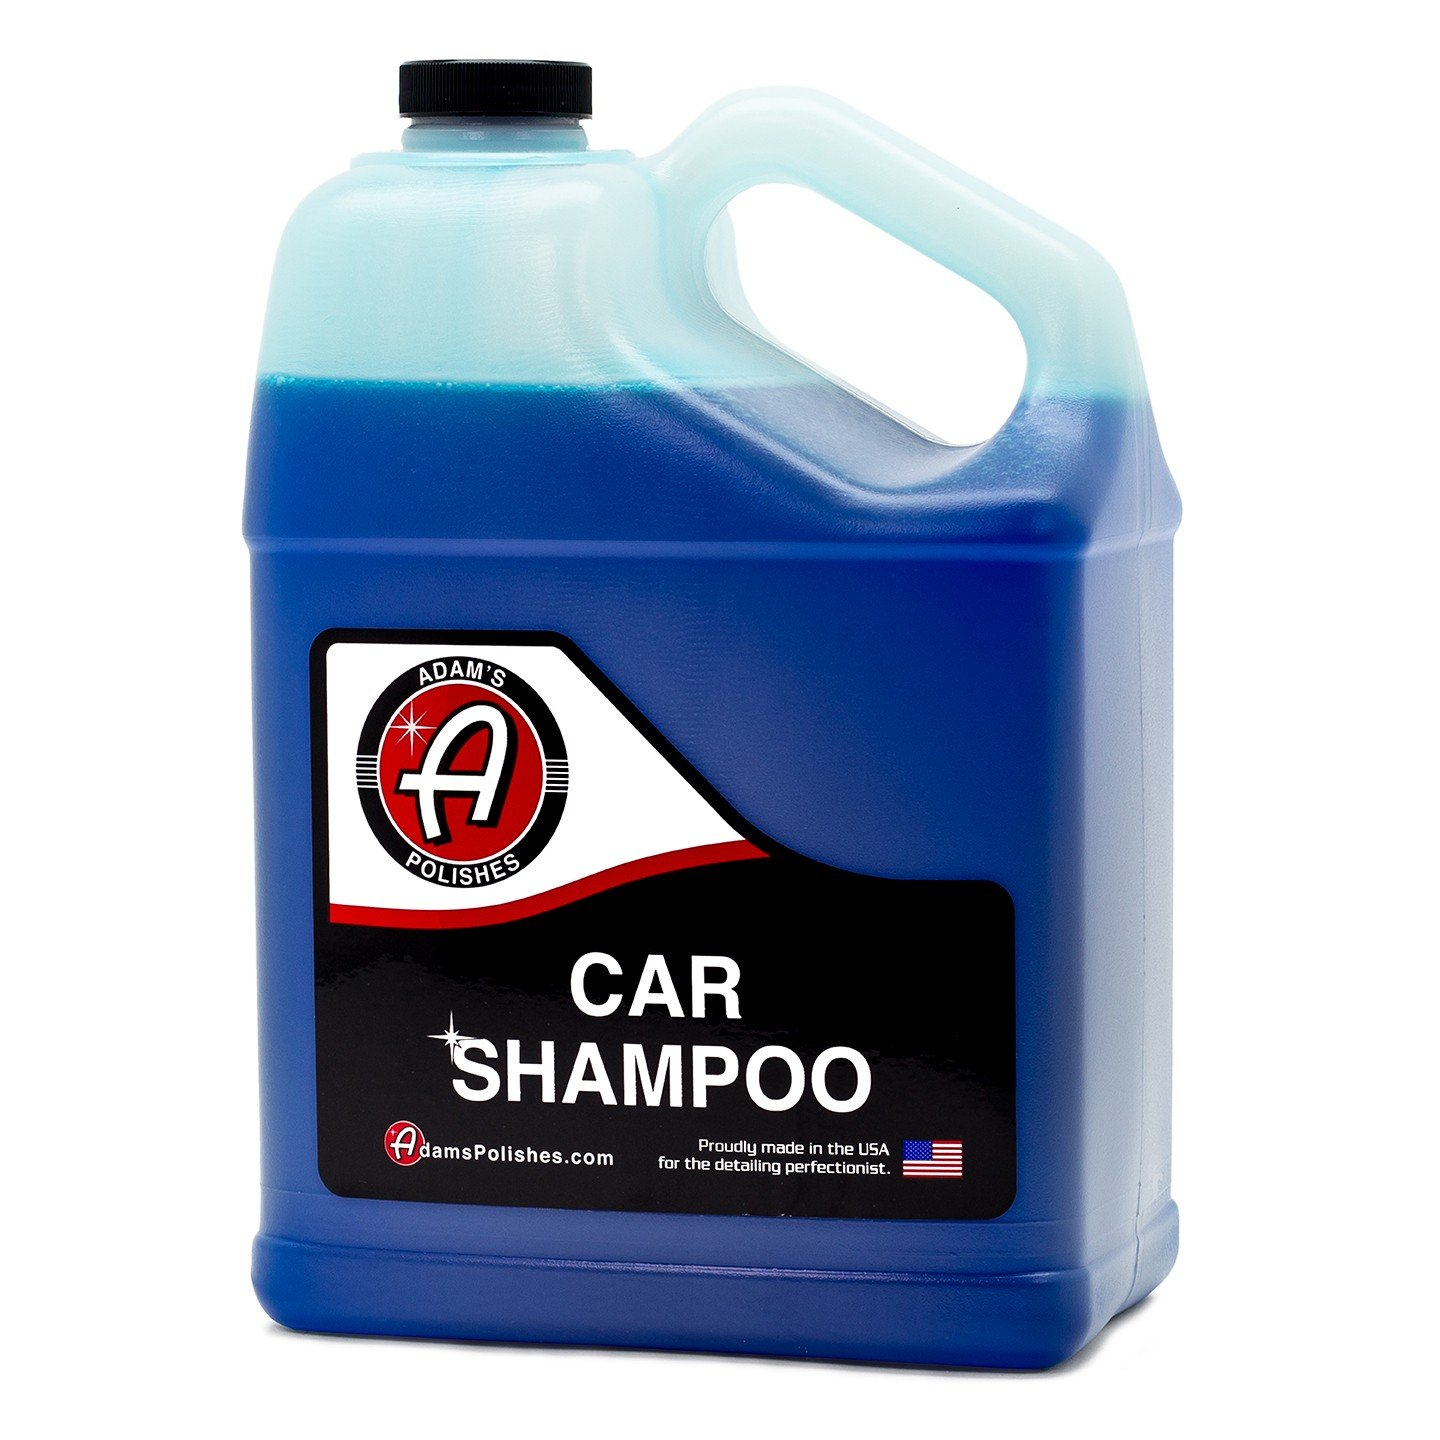 Adam's Car Wash Shampoo -pH Neutral Soap Formula for Safe, Spot Free Cleaning - Thick, Luxurious Suds That Always Rinses Clean - Ultra Slick Formula That Wont Scratch or Leave Water Spots (1 Gallon) by Adam's Polishes